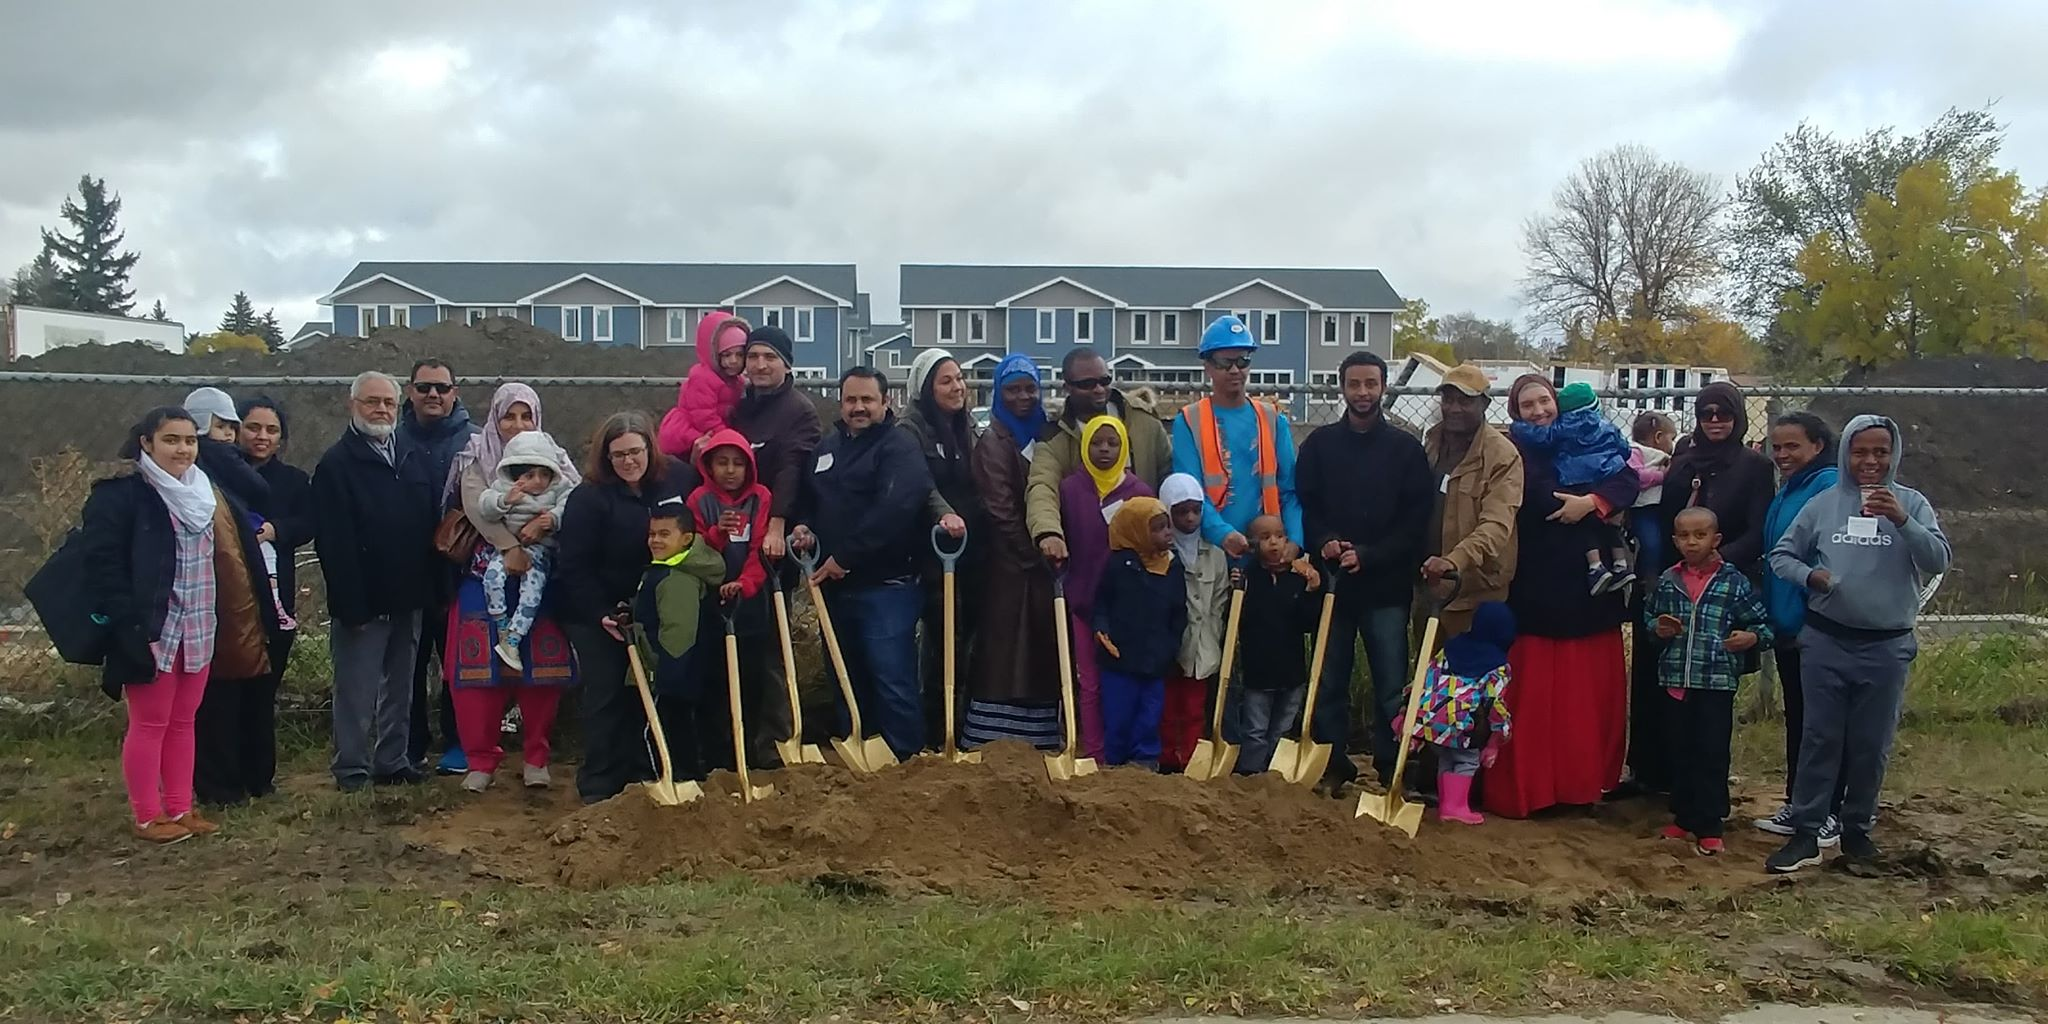 Habitat for Humanity begins construction of 11 new homes at Haultain Crossing